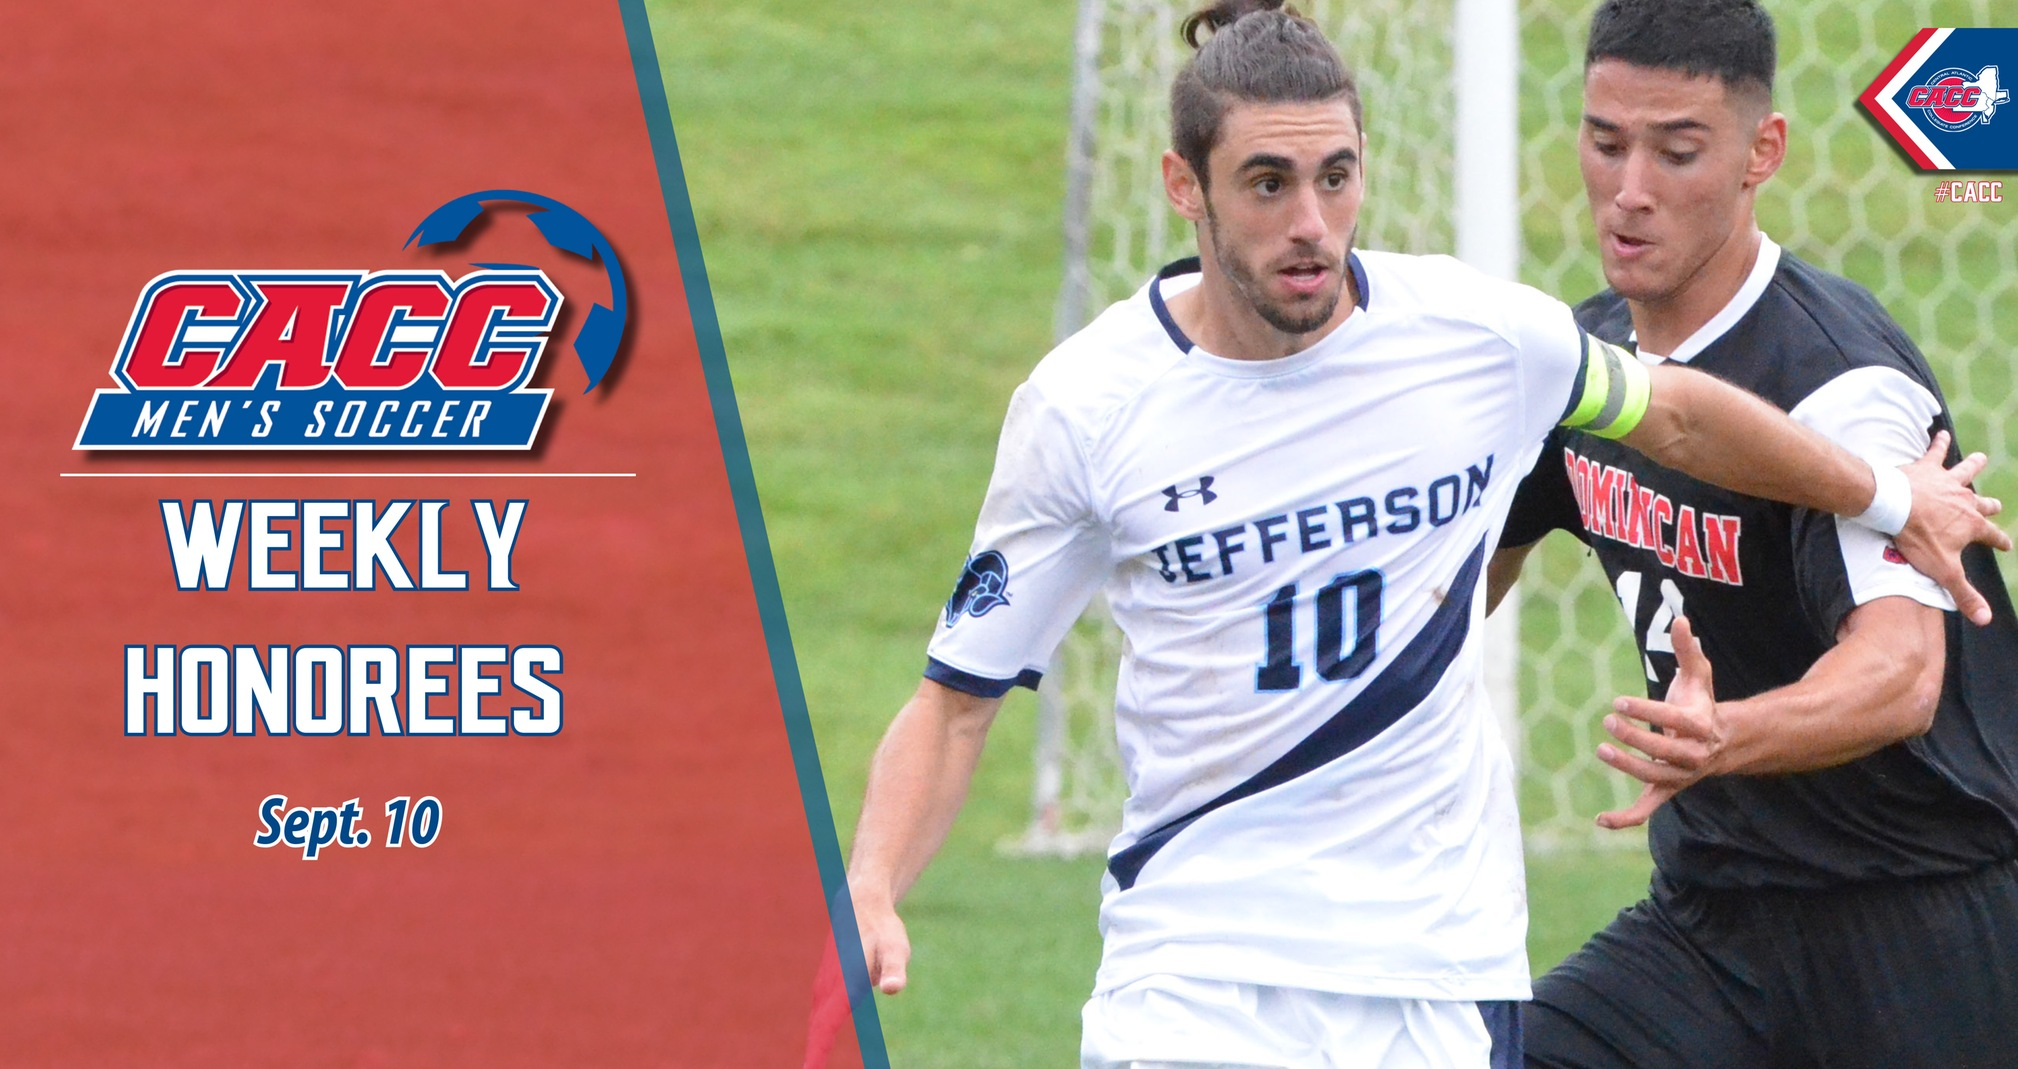 CACC Men's Soccer Weekly Honorees (Sept. 10)